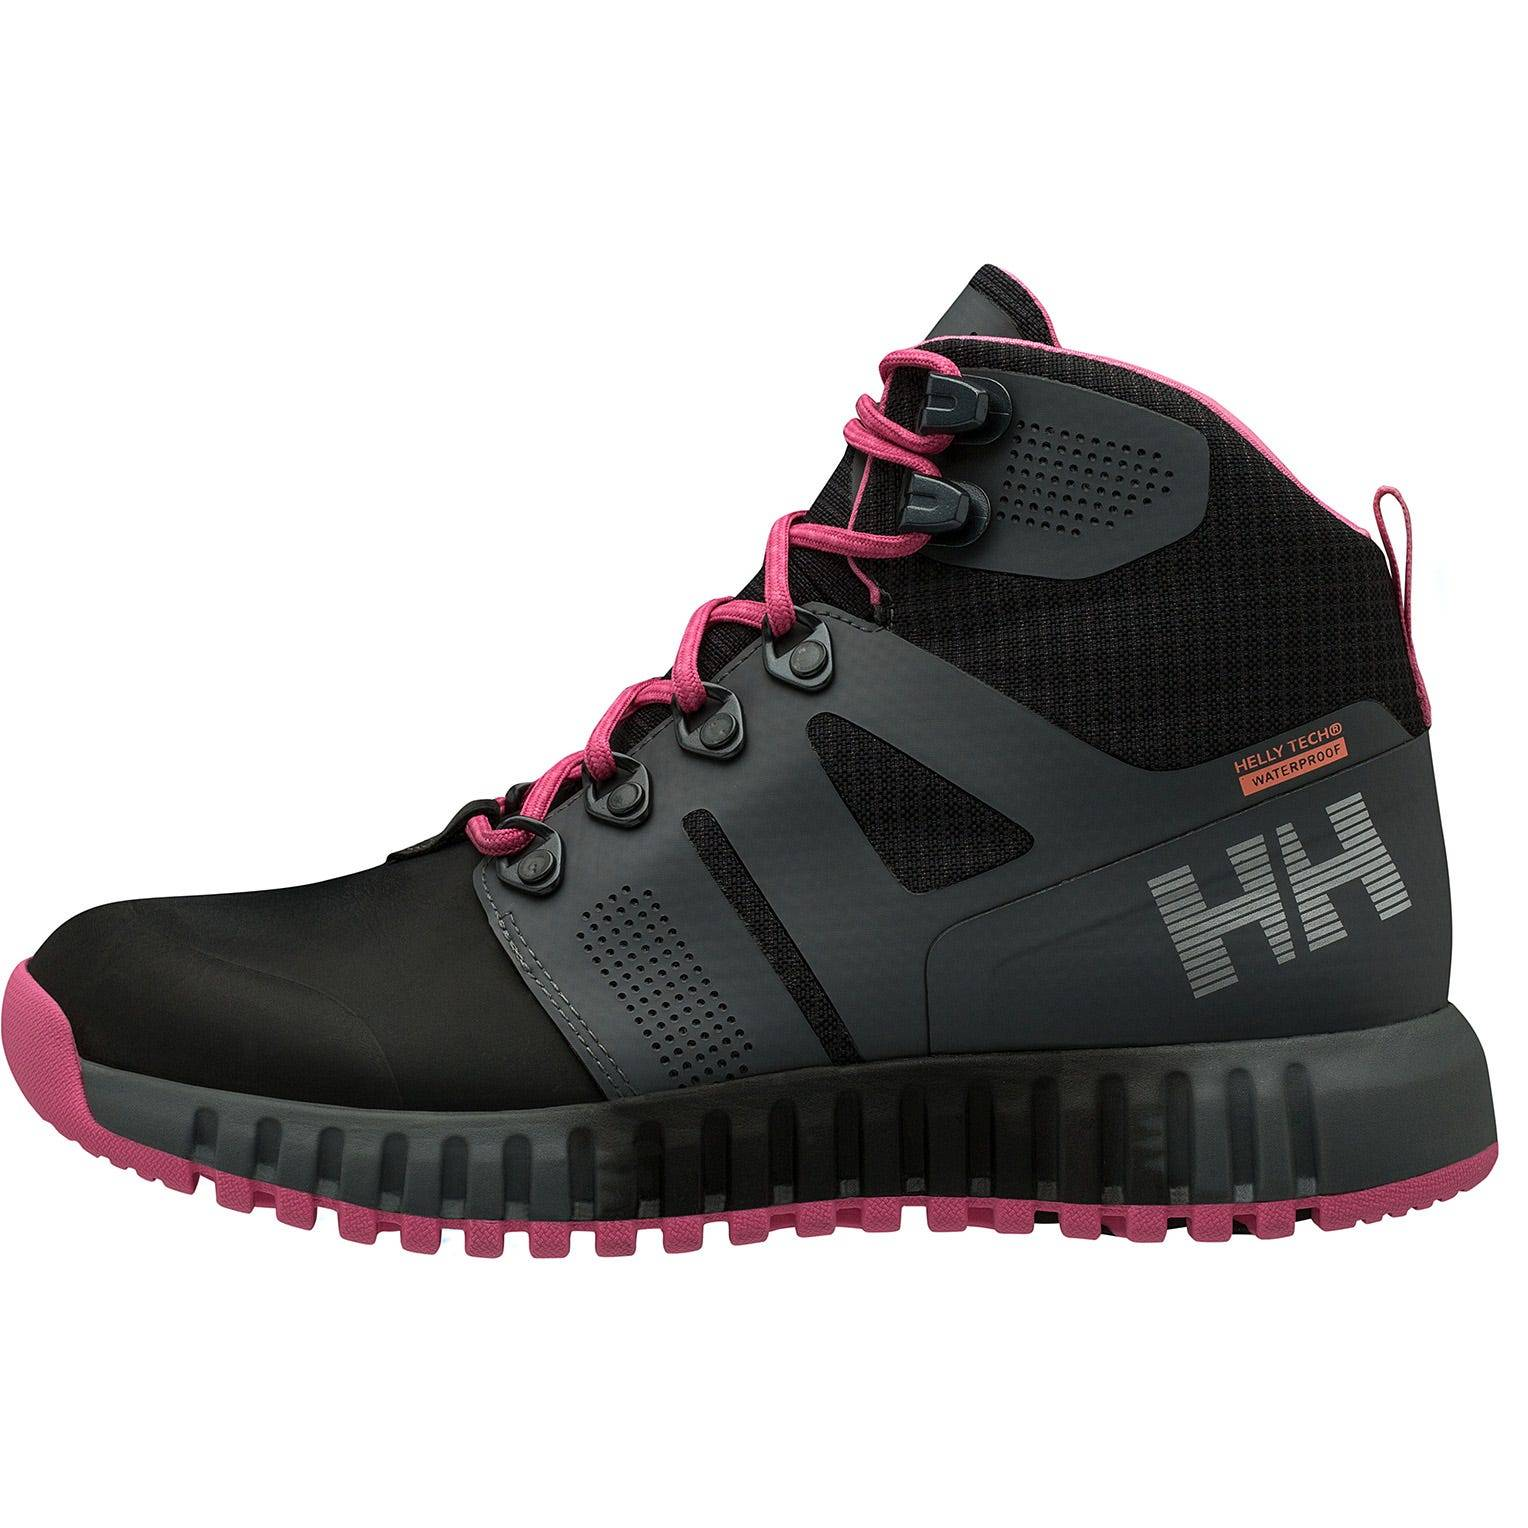 Helly Hansen W Vanir Gallivant Ht Womens Hiking Boot Black 40/8.5